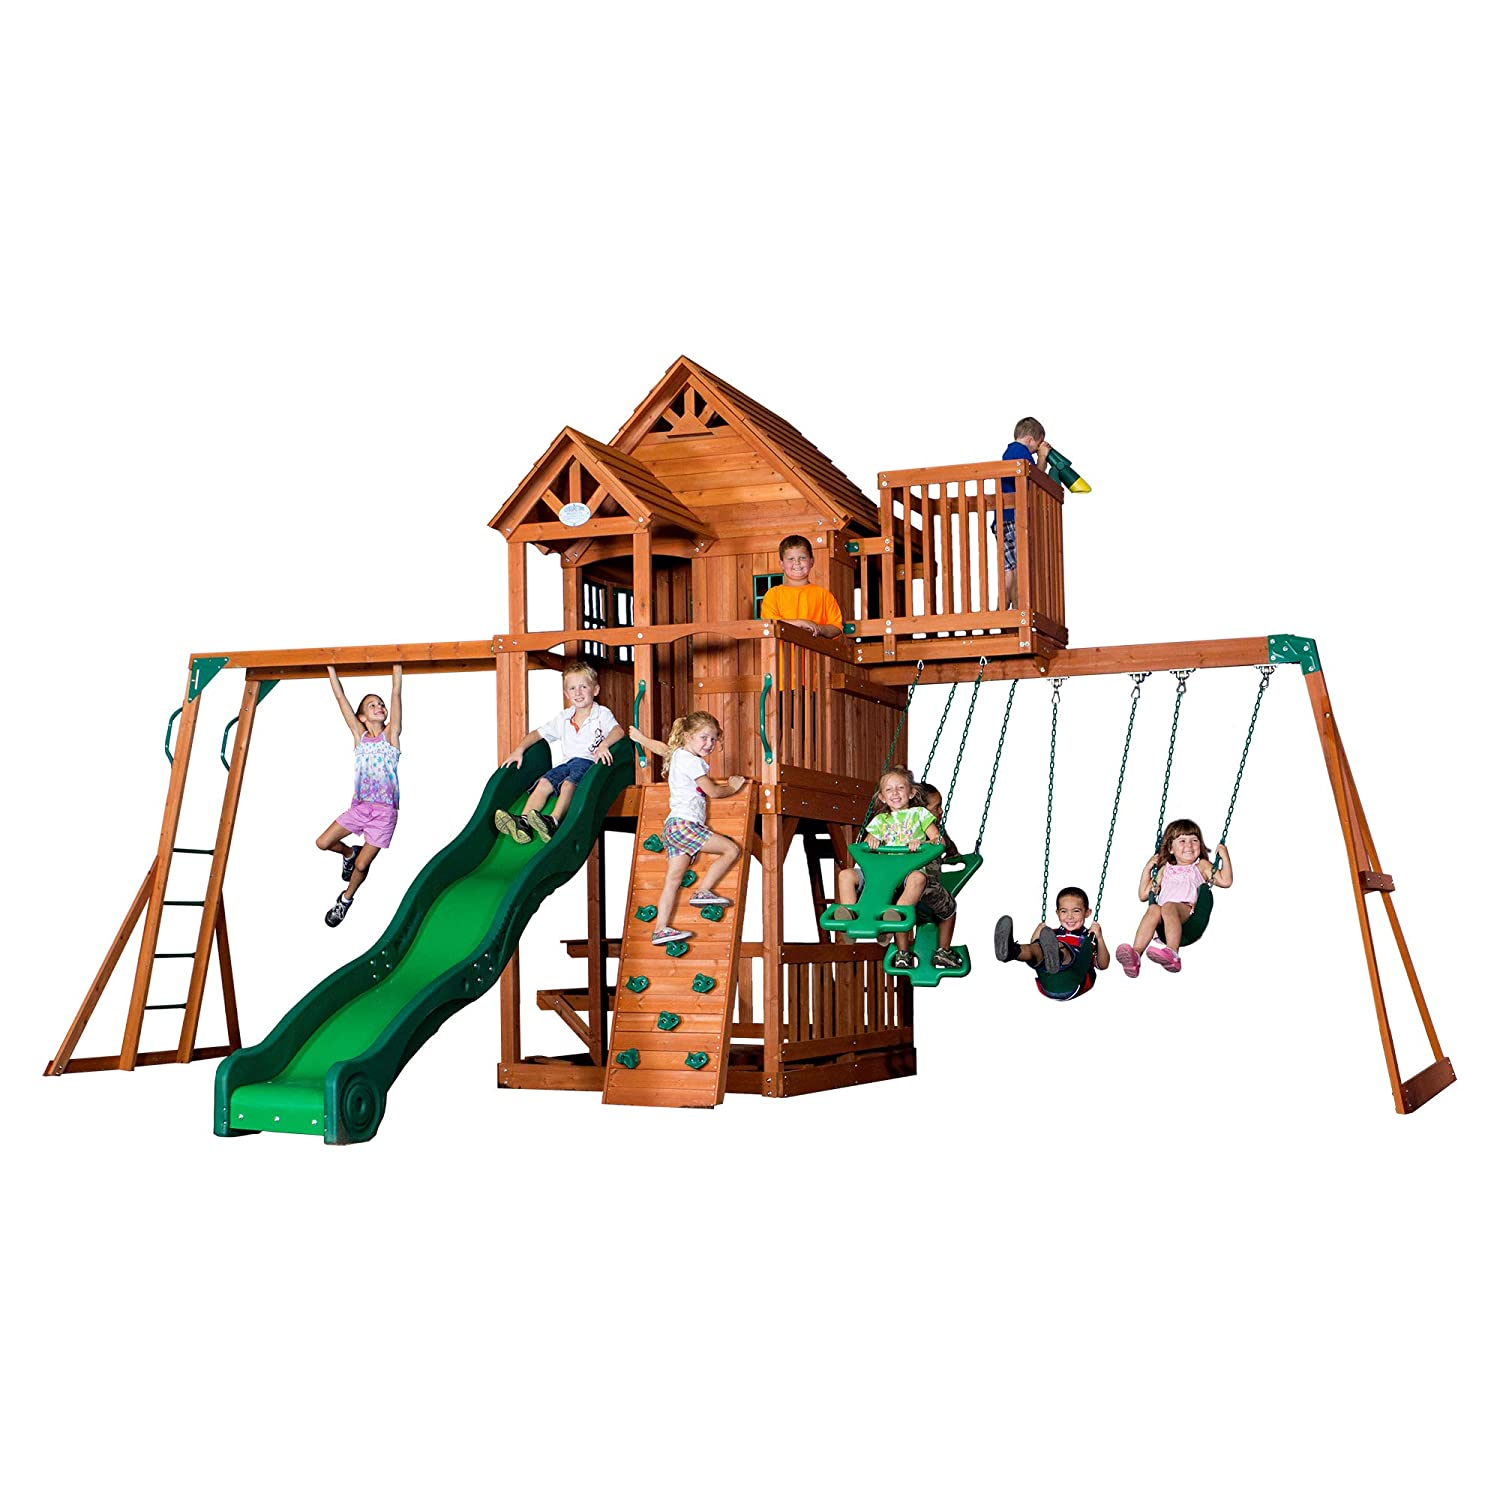 Top 7 Best Swing Sets for Older Kids Reviews in 2020 3